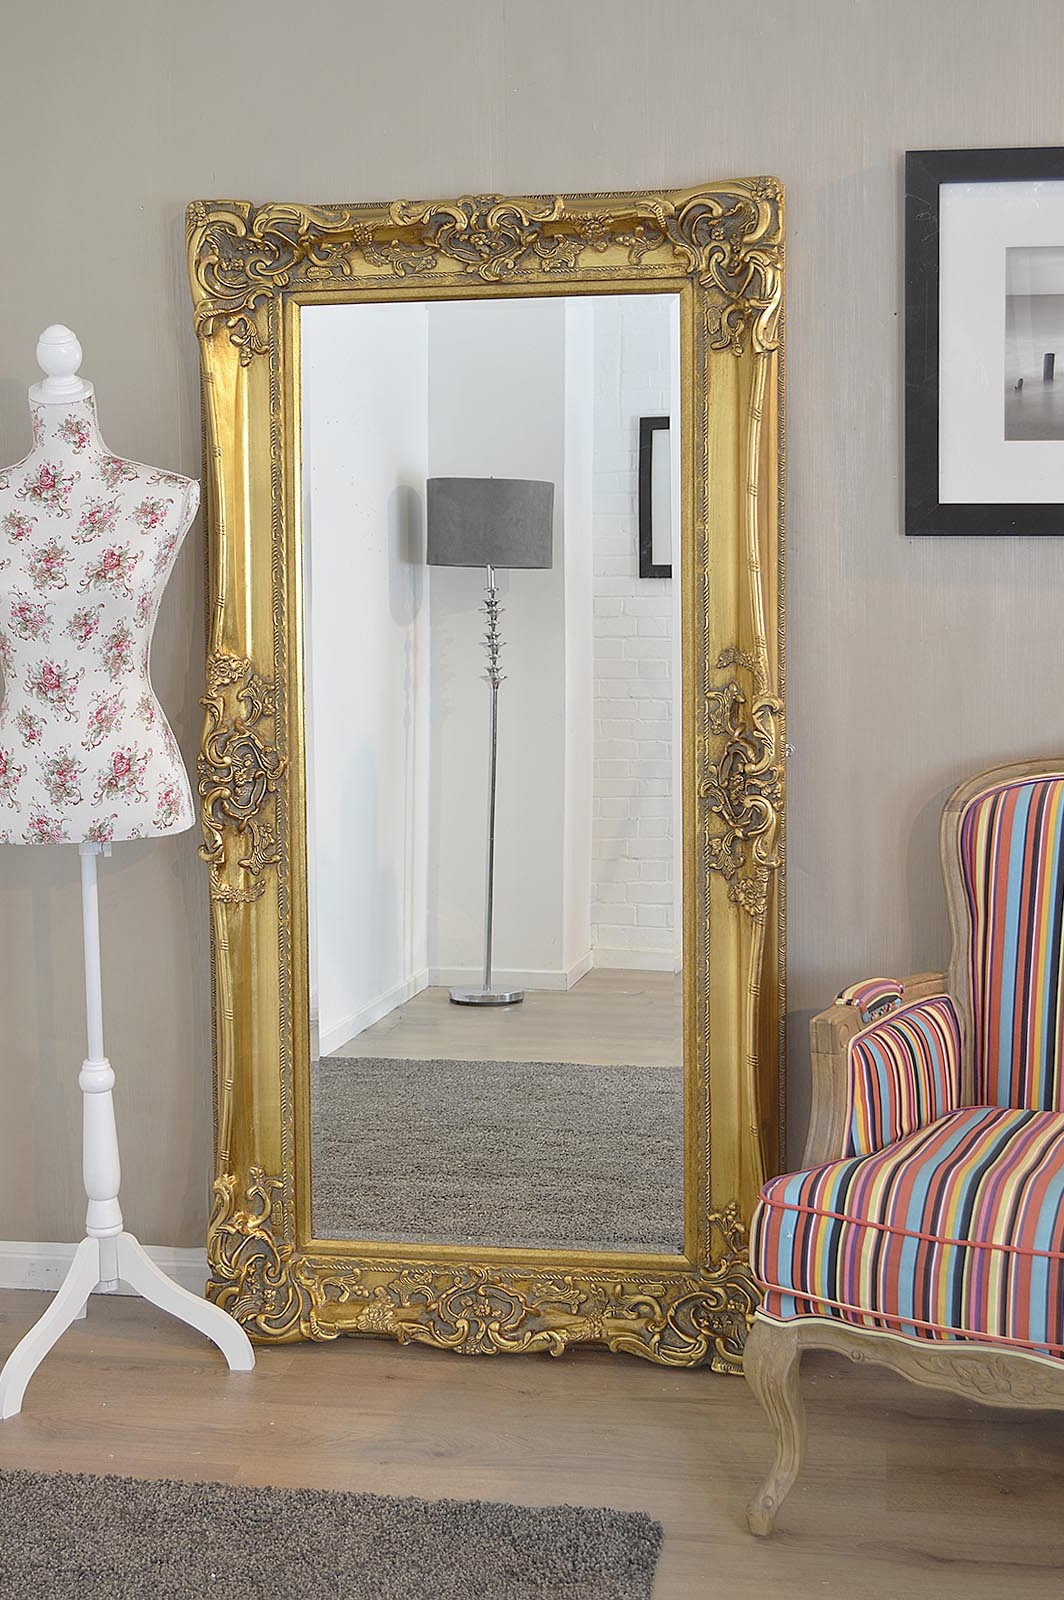 Vintage Wall Hanging Mirrors Antique Mirror Hooks Classic Large Flat Within Most Popular Classic Wall Mirrors (View 8 of 20)